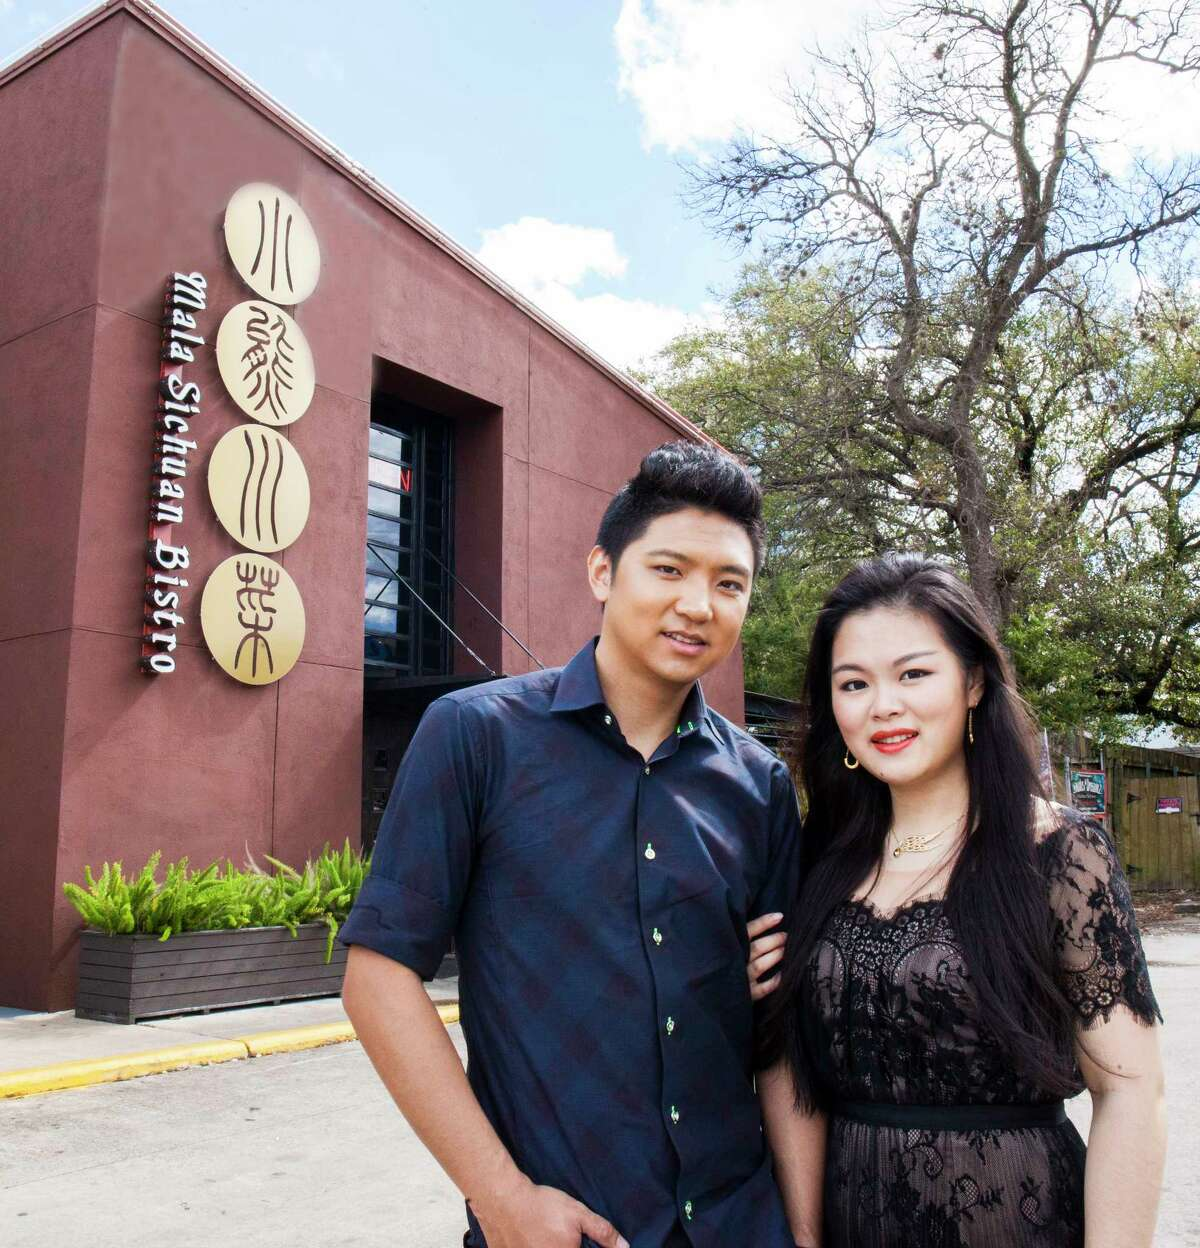 The husband and wife team of Chen Heng and Cori Xiong of Mala Sichuan will open a new outpost of their Sichuan restaurant in Finn Hall, a food hall in the JPMorgan Chase Building, 712 Main.